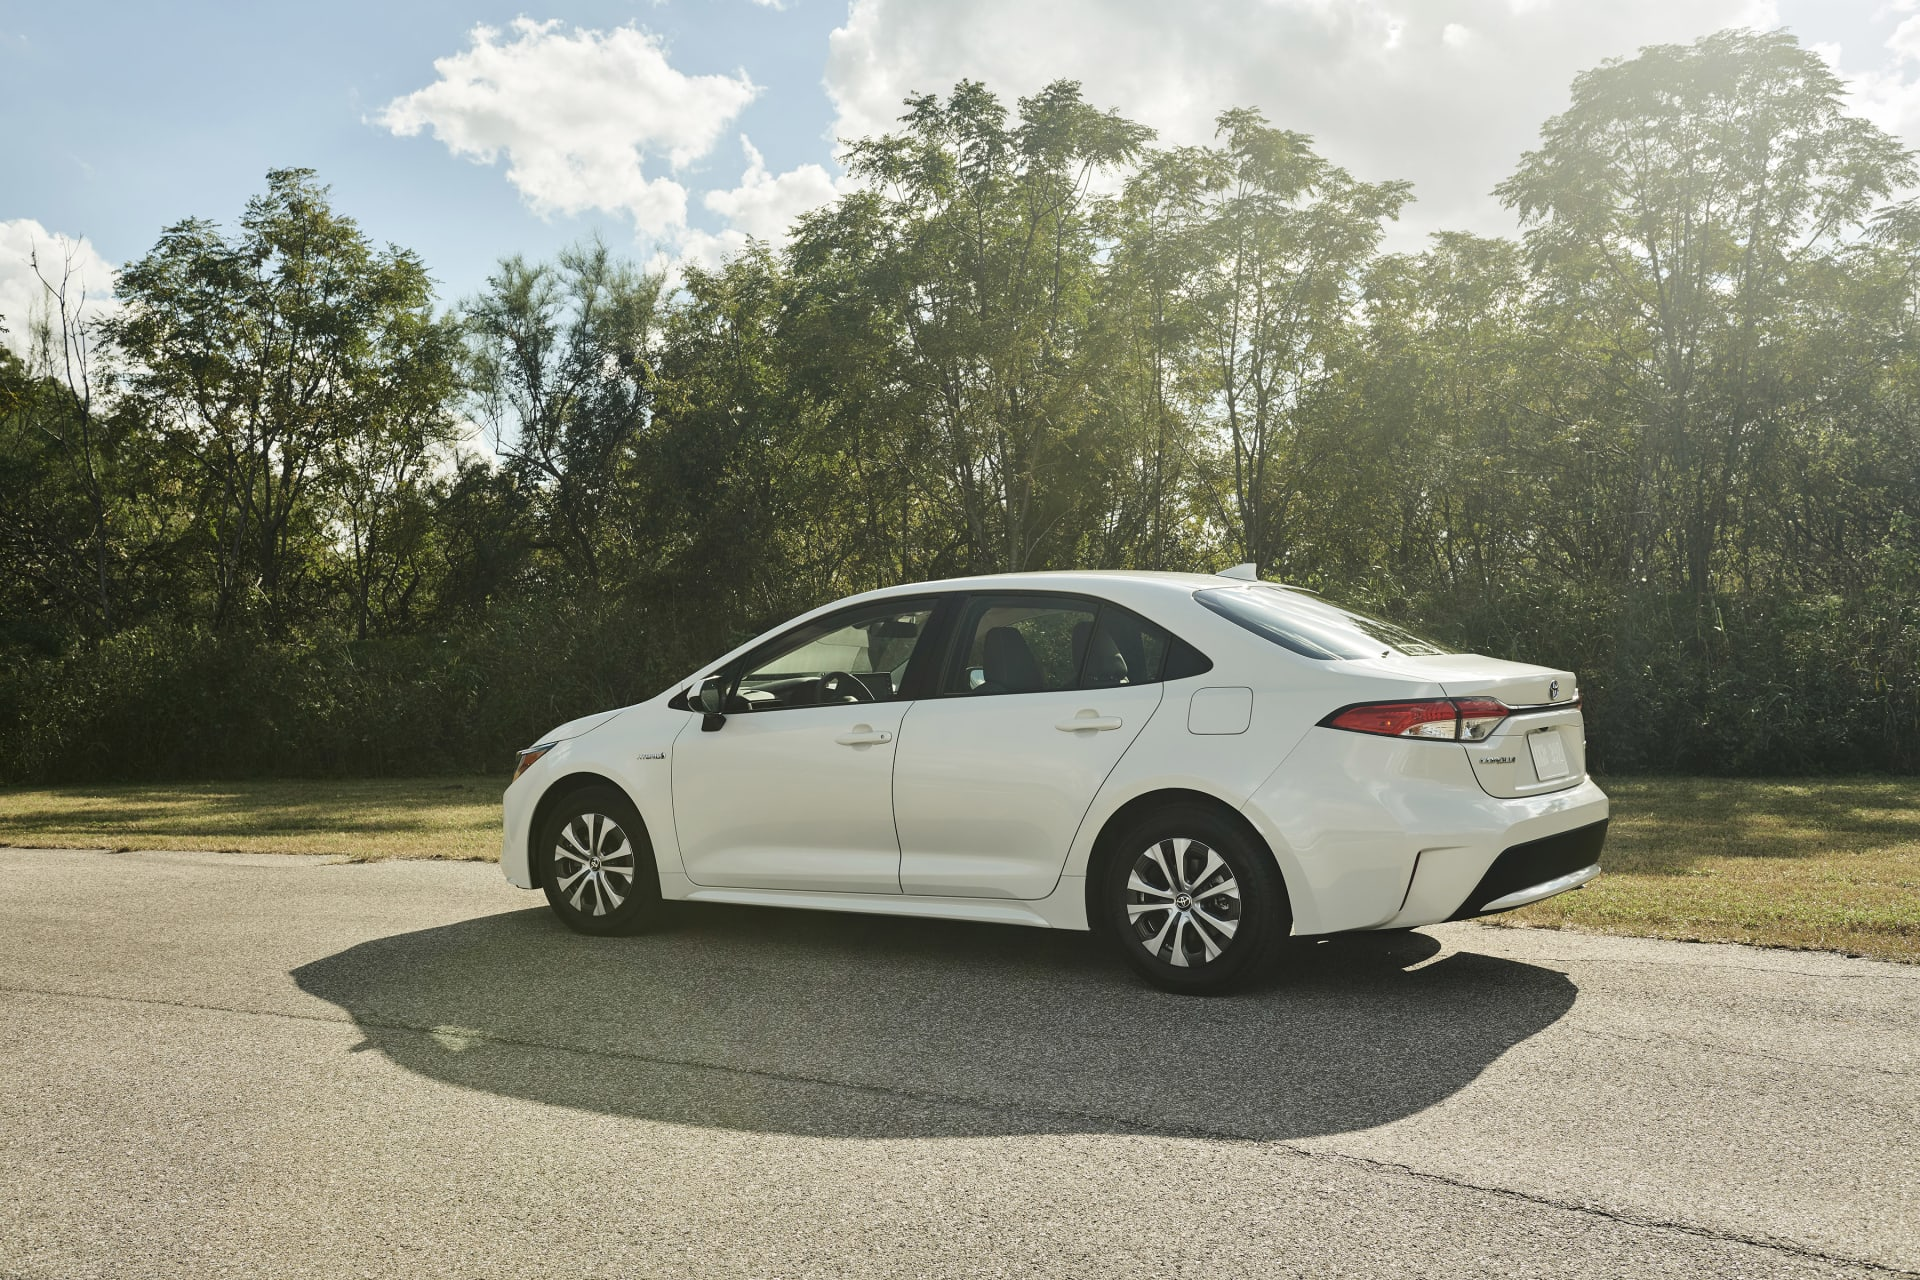 Toyota Corolla Mpg >> At 52 Mpg Toyota Corolla Hybrid Gives Prius A Run For Its Gas Money